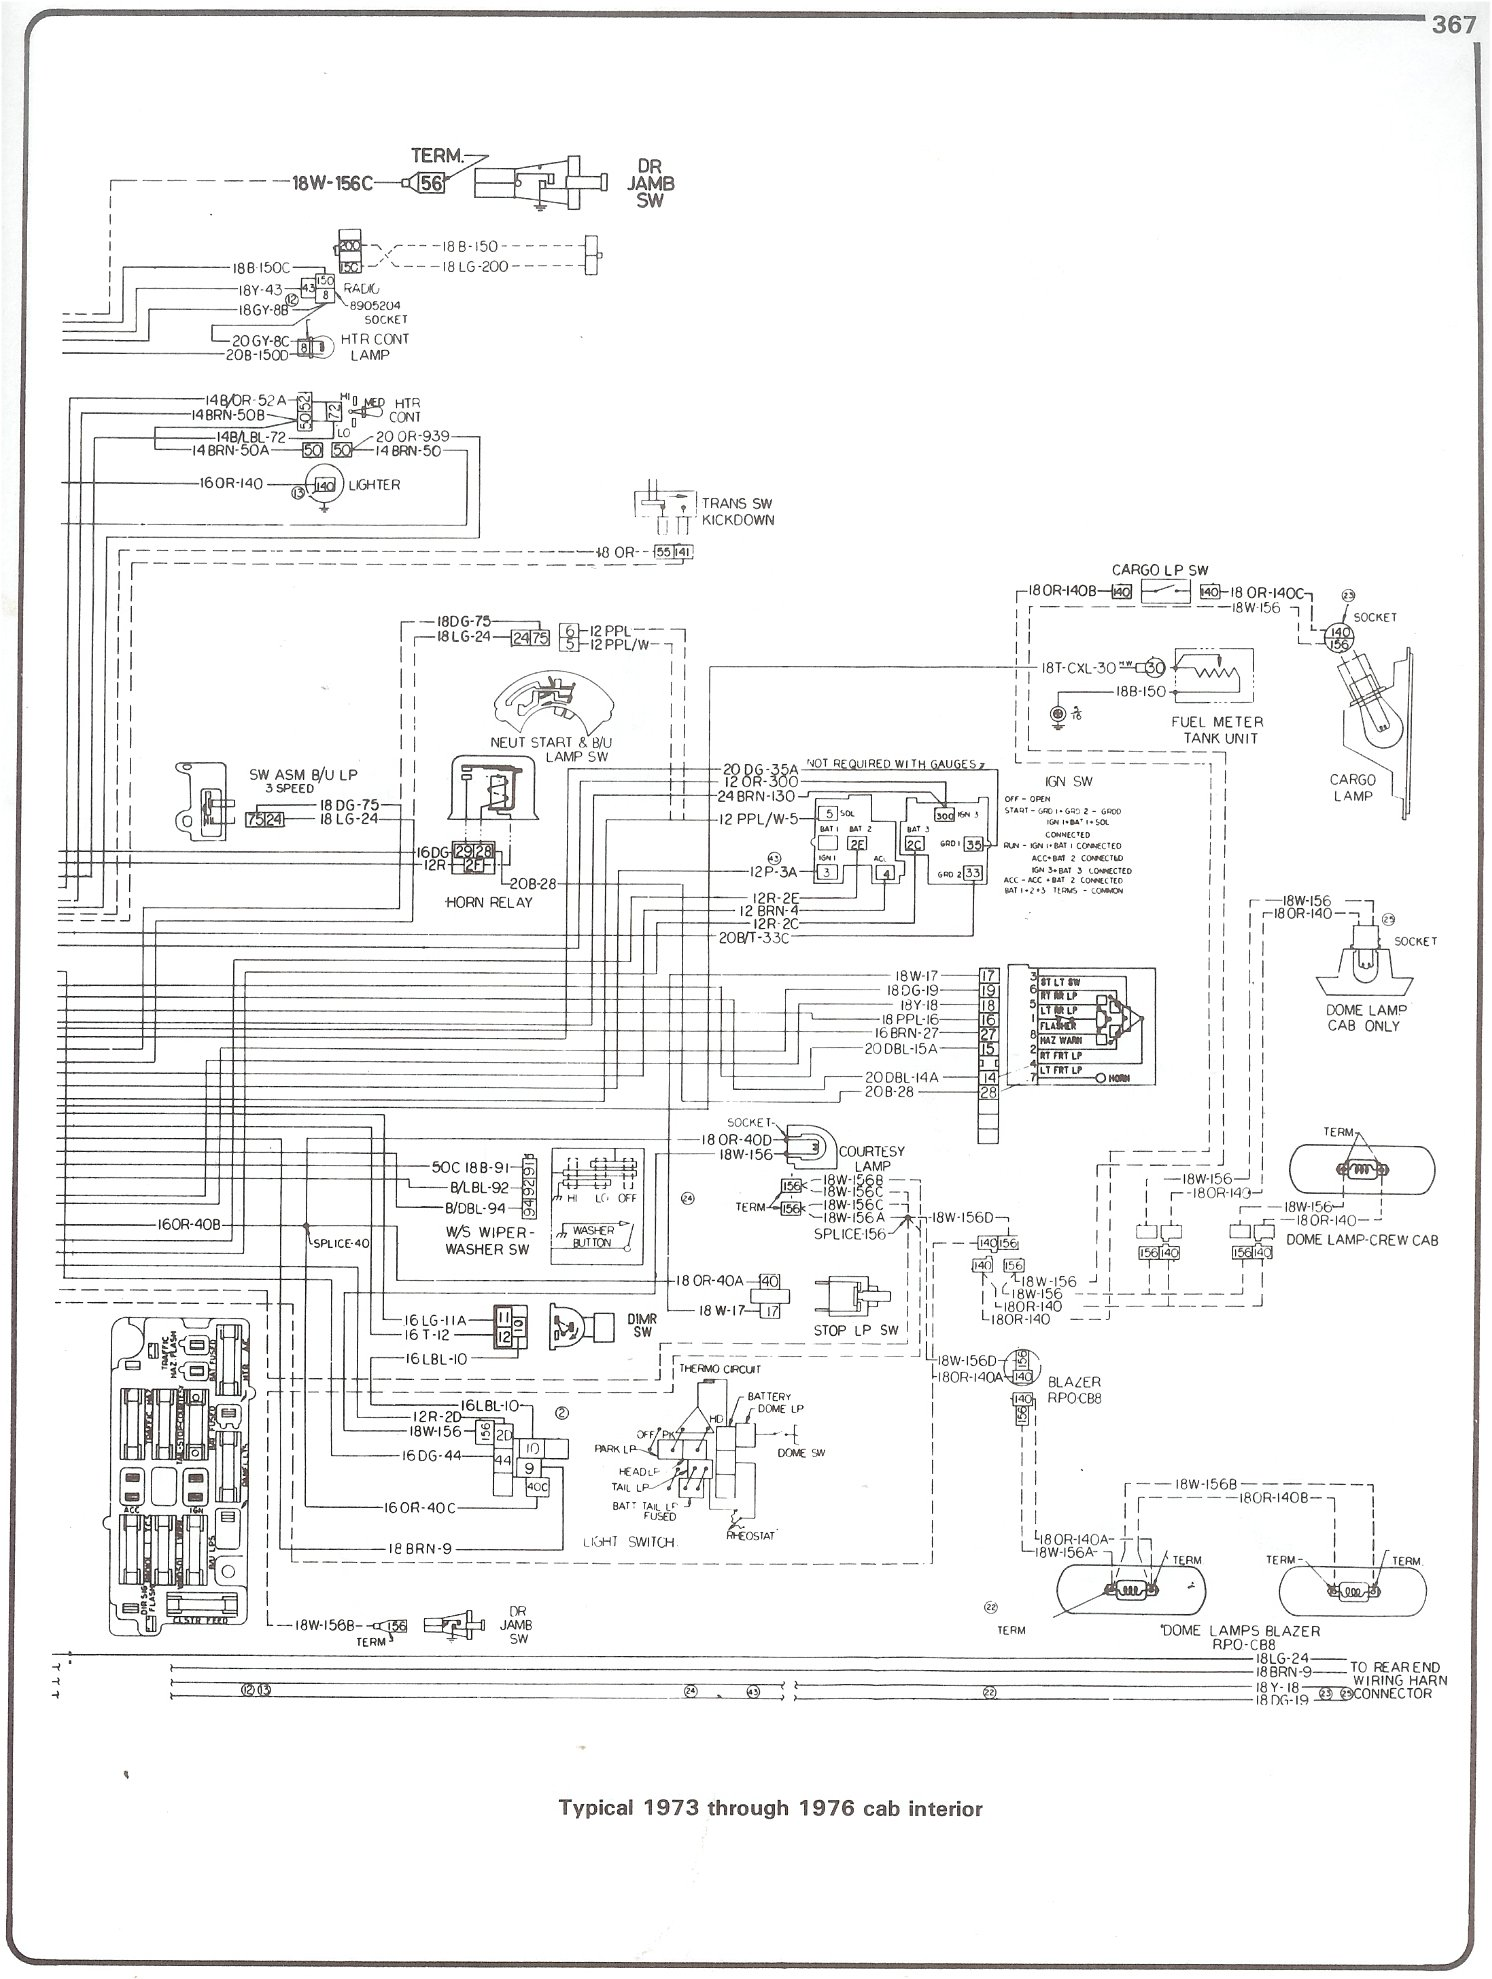 73 76_cab_inter complete 73 87 wiring diagrams GMC Truck Electrical Wiring Diagrams at gsmx.co